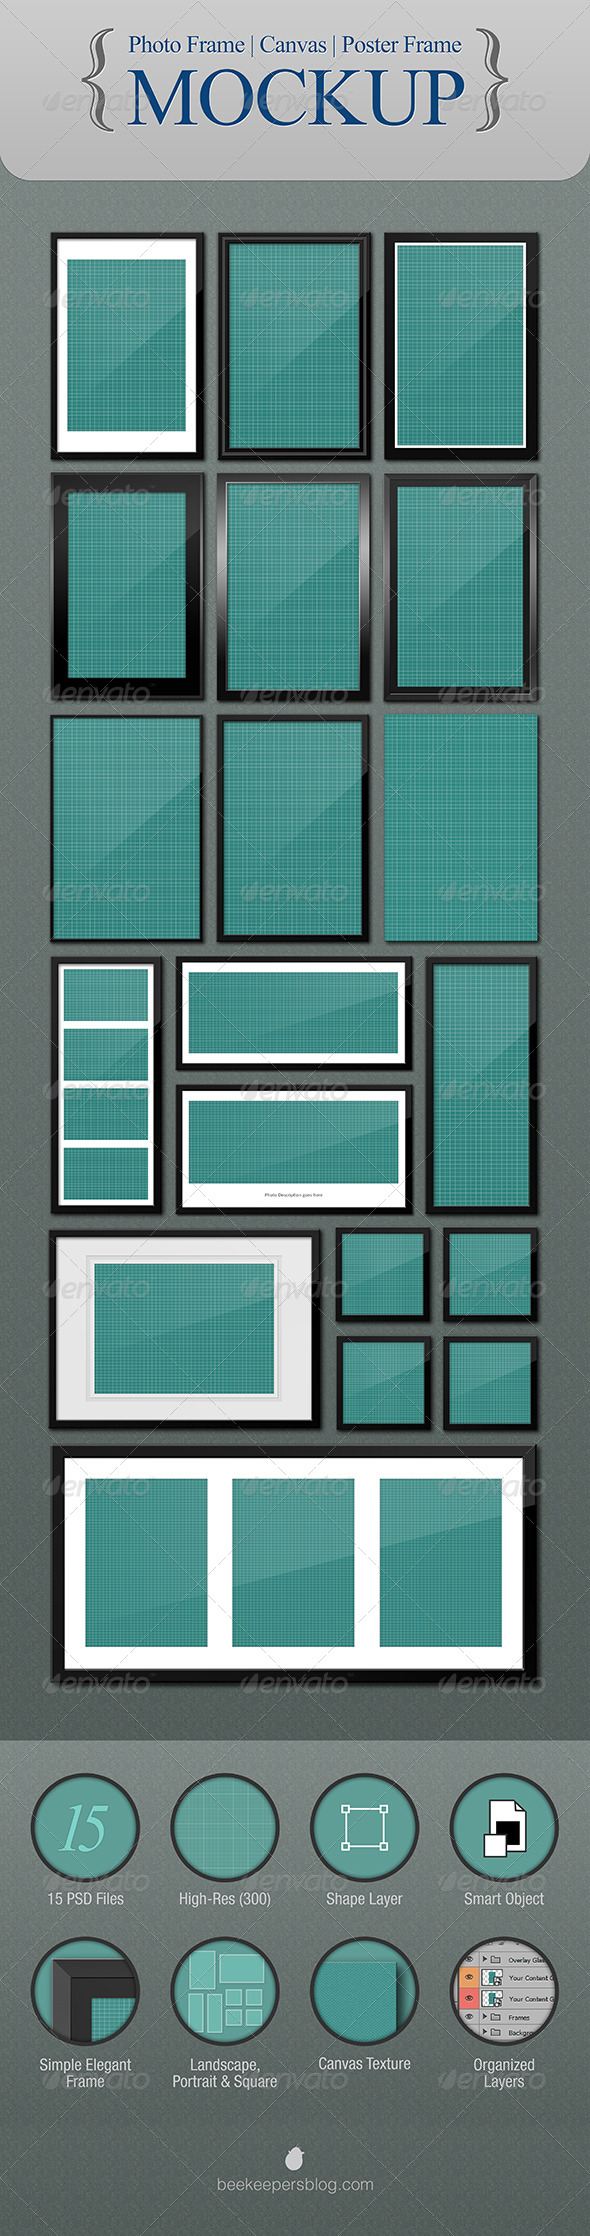 GraphicRiver Photo Canvas Poster Frame Mockup 4928729